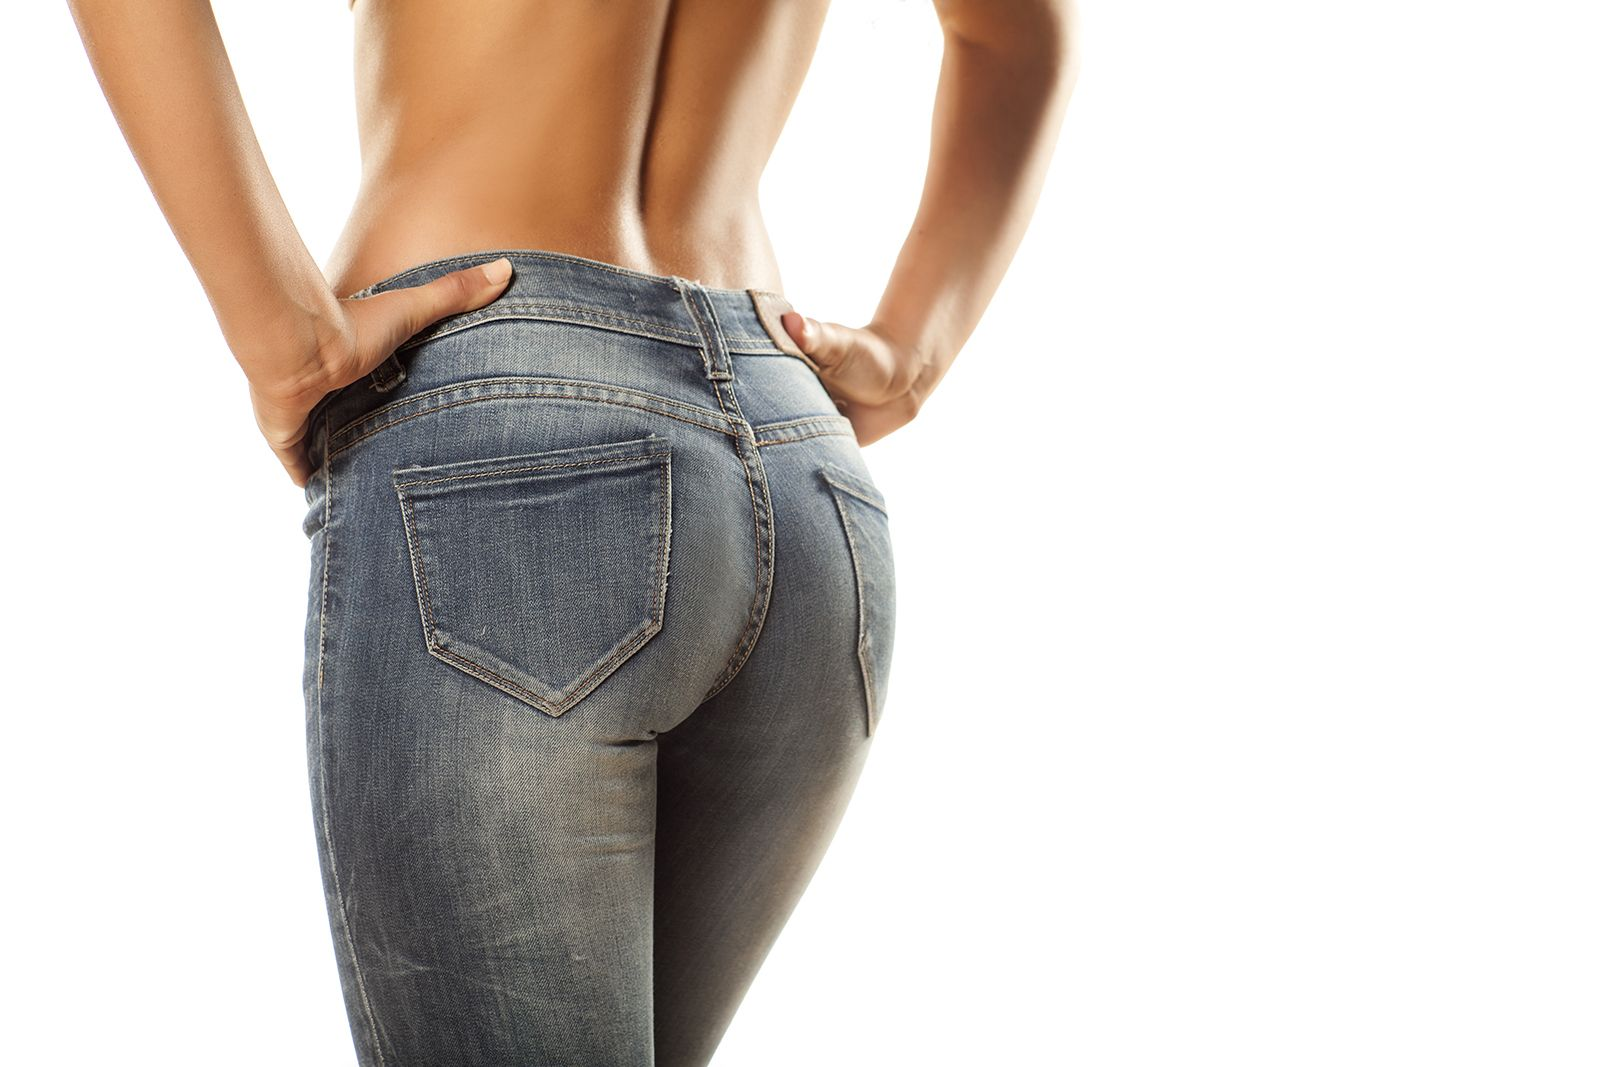 A woman's backside in tight jeans